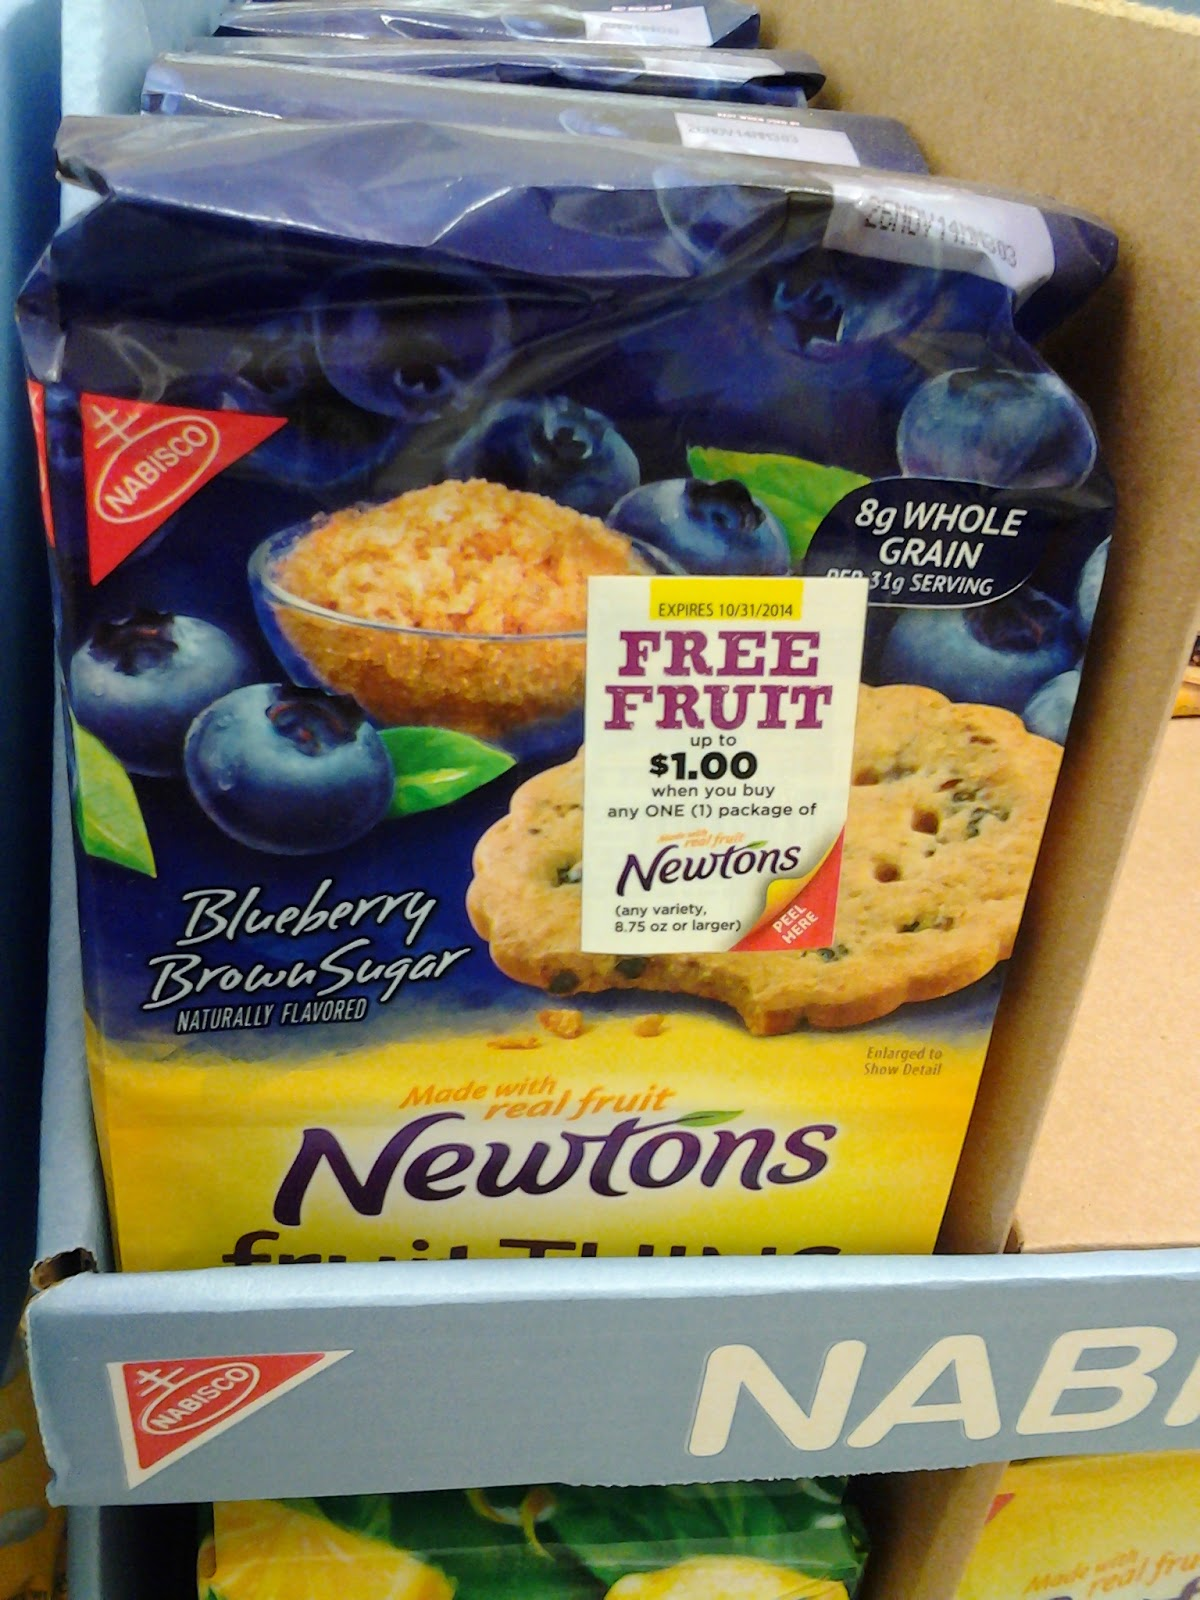 $1.00 off fruit when you buy Newtons coupon